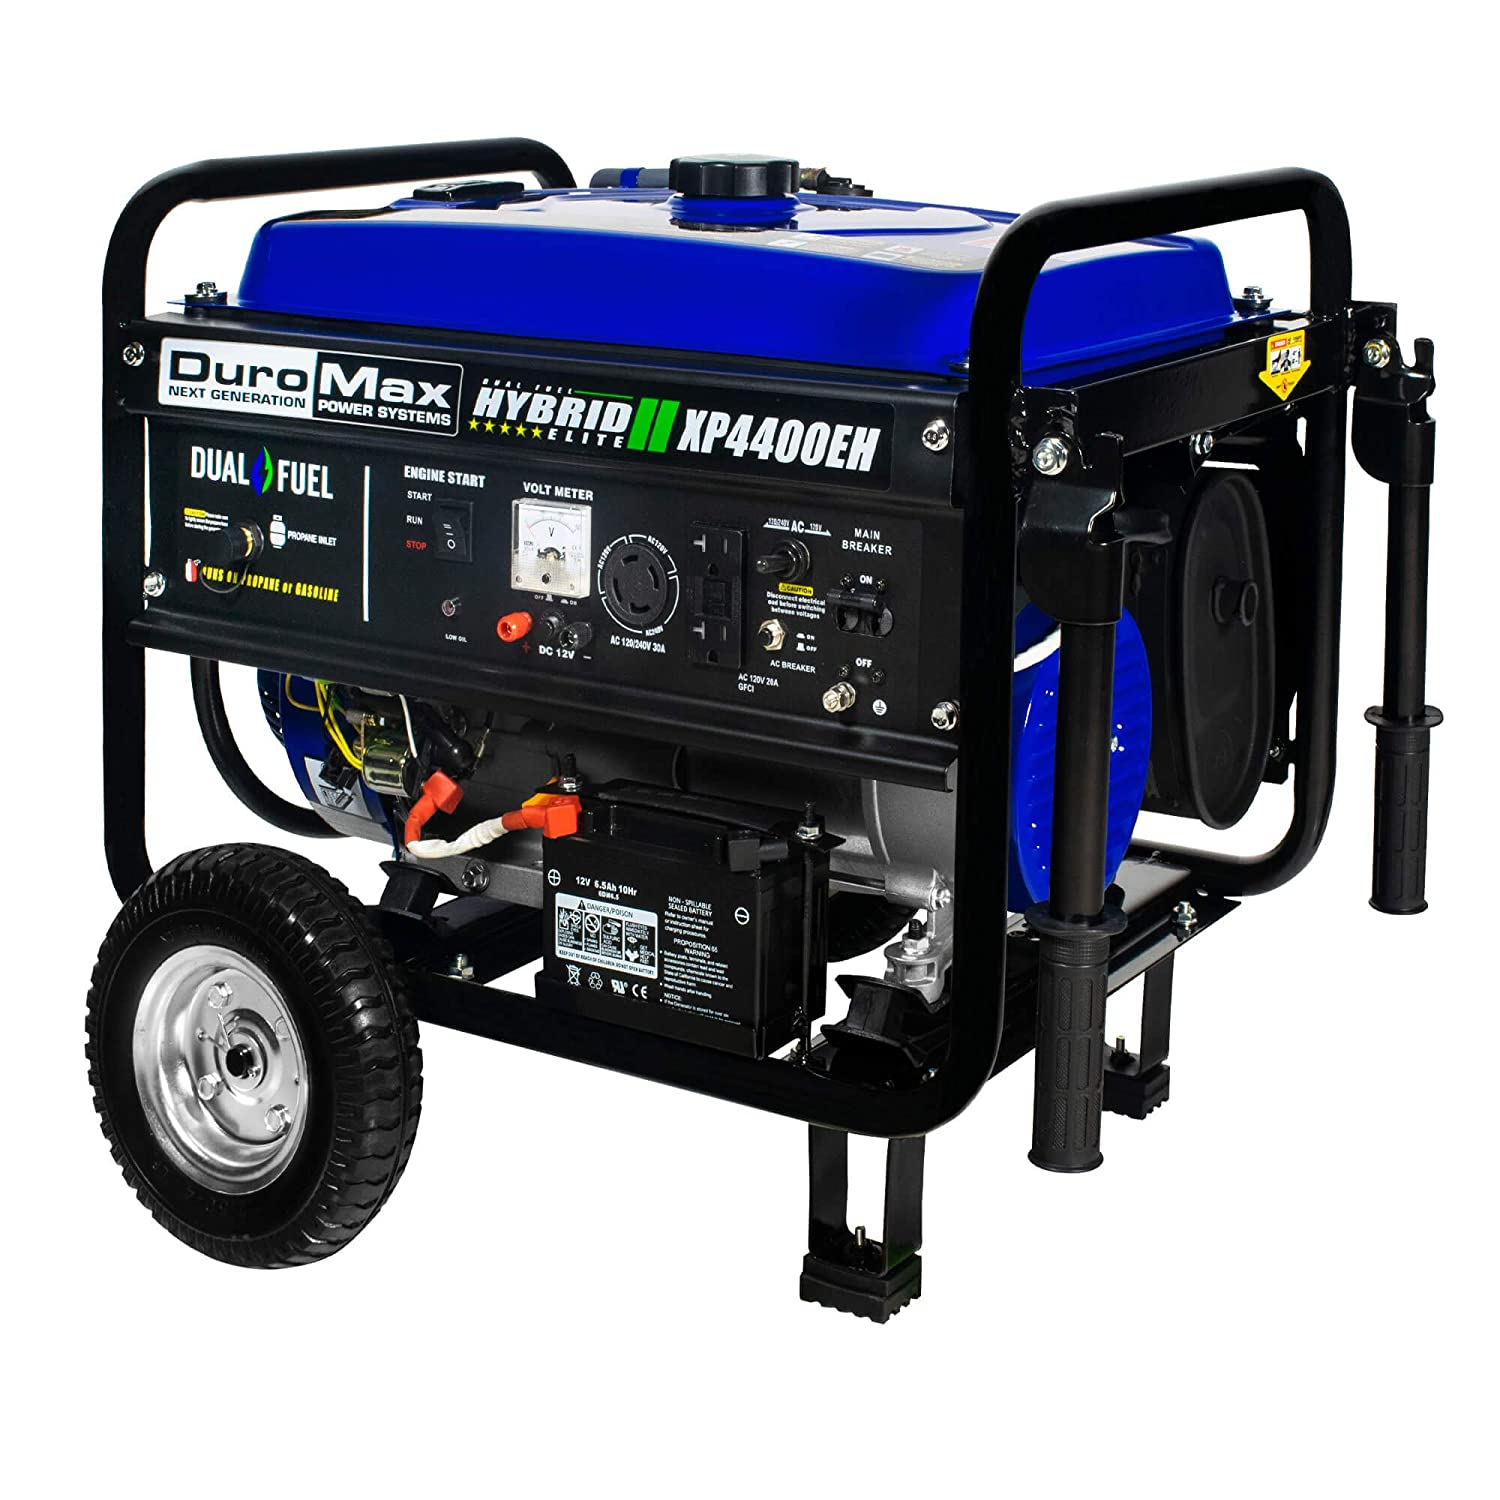 Duromax Xp4400eh 3500 Running Watts 4400 Starting Generator Avr Circuit Source Abuse Report Diesel Dual Fuel Powered Portable Garden Outdoor